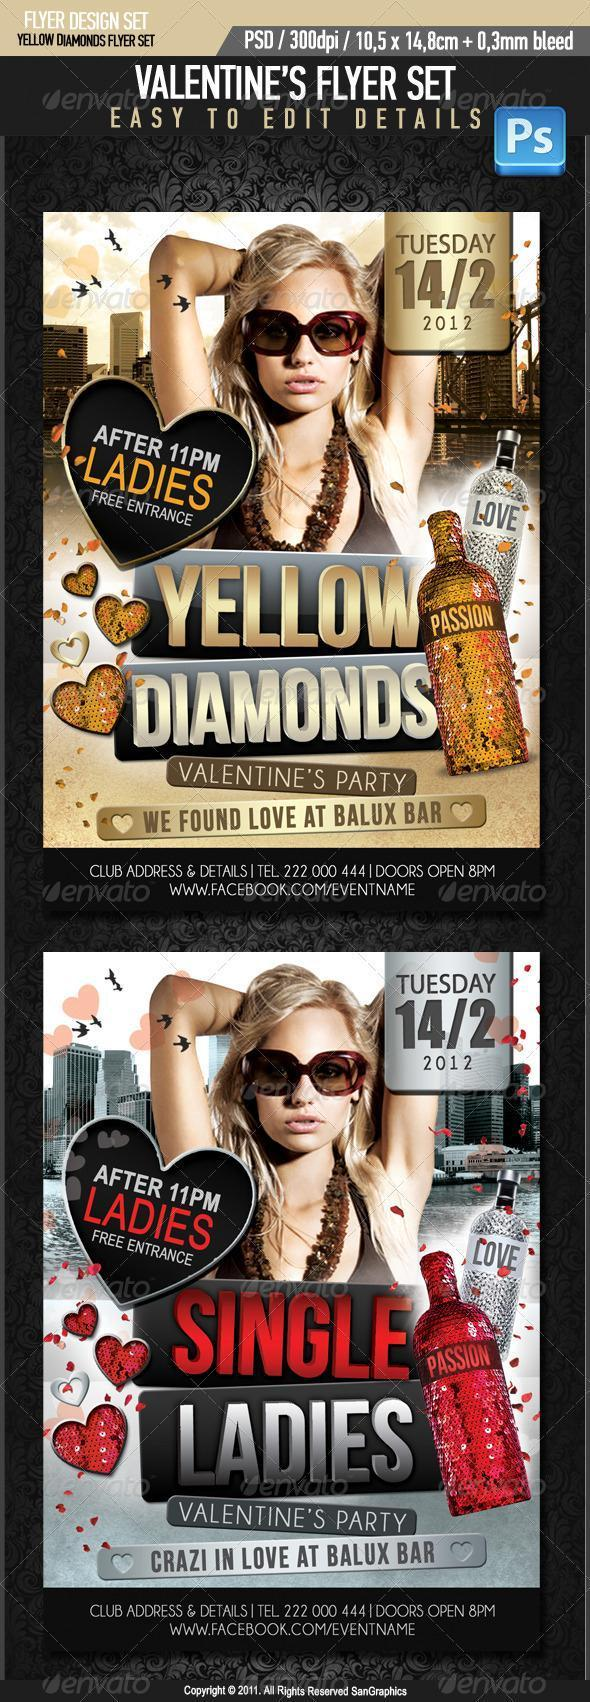 Yellow Diamonds Party Flyer Valentines